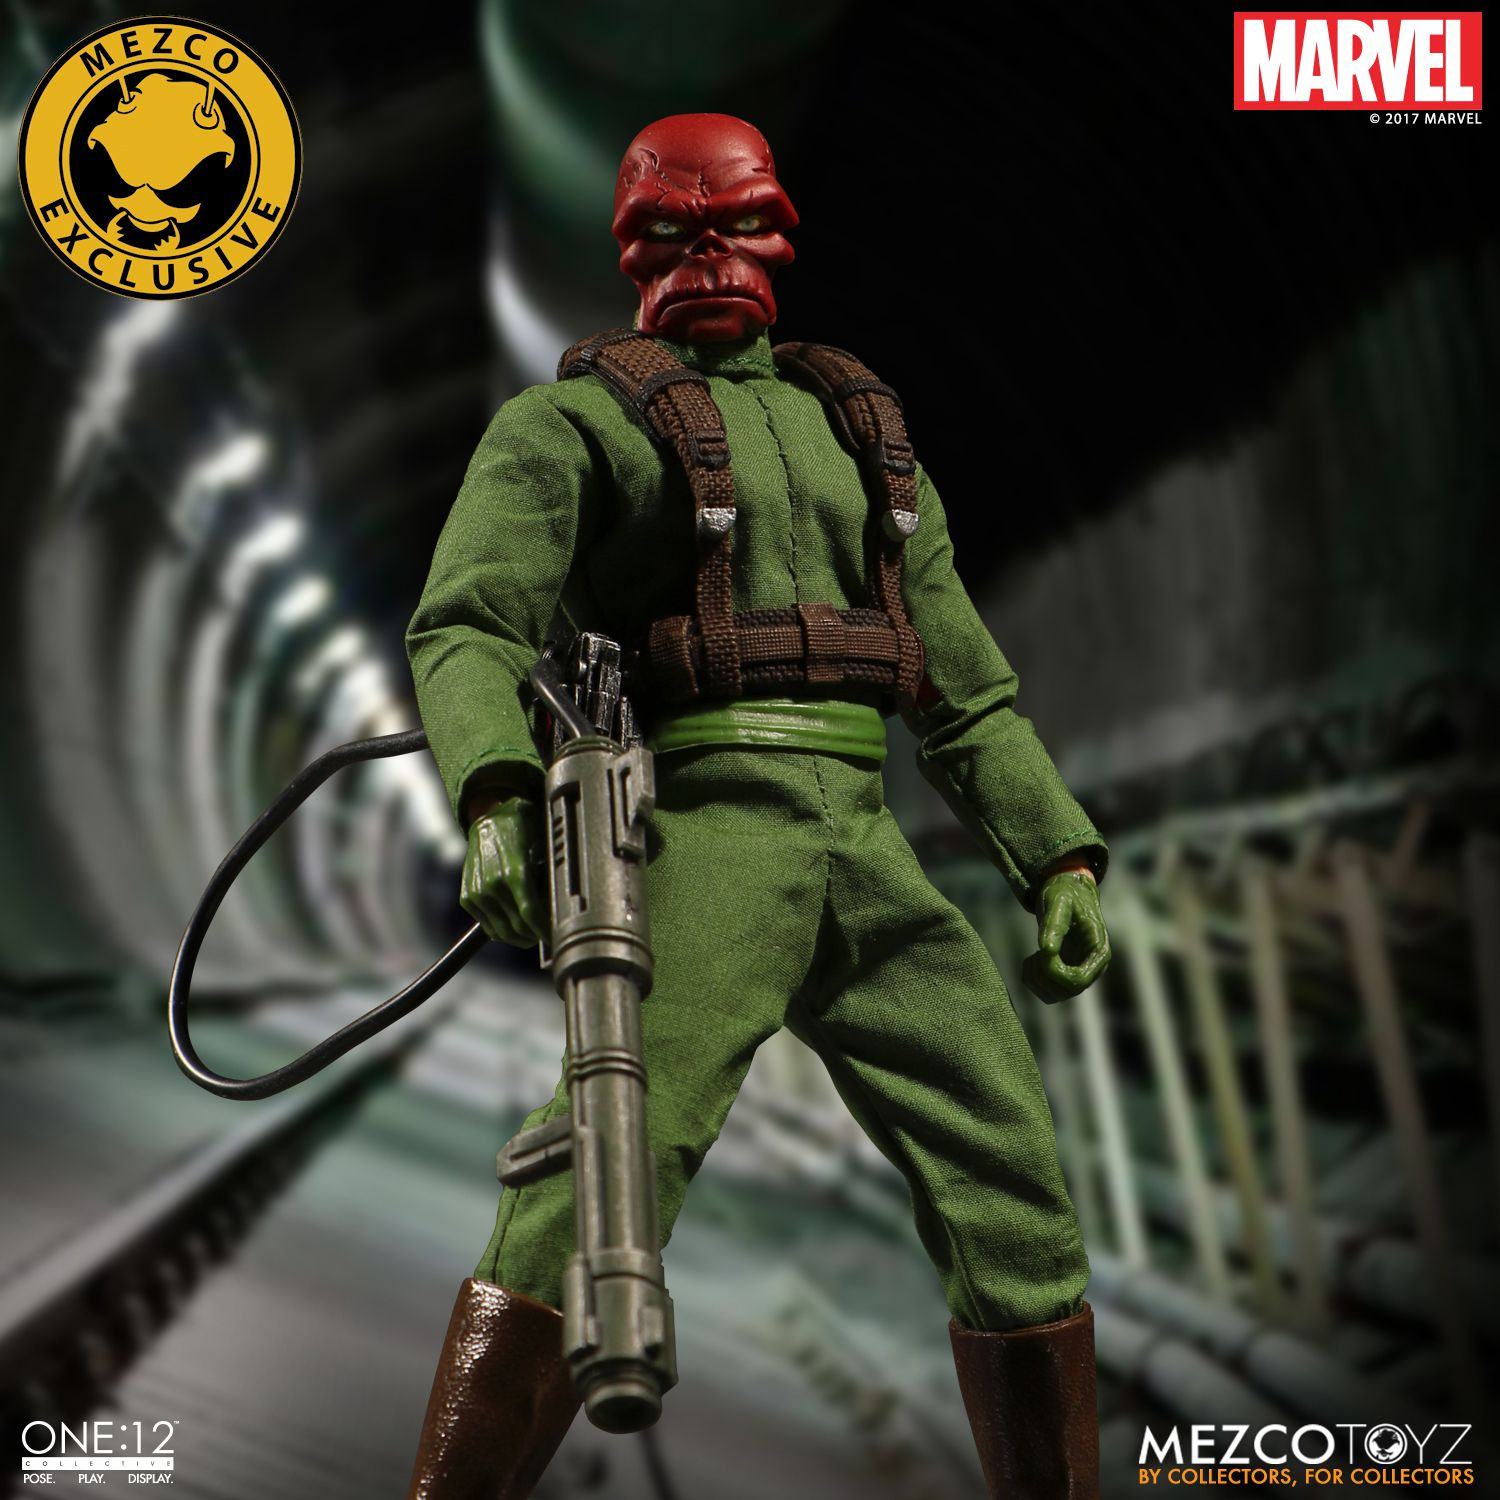 [Action Figures] Todo sobre Action Figures, Hot Toys, Sideshows - Página 15 3871